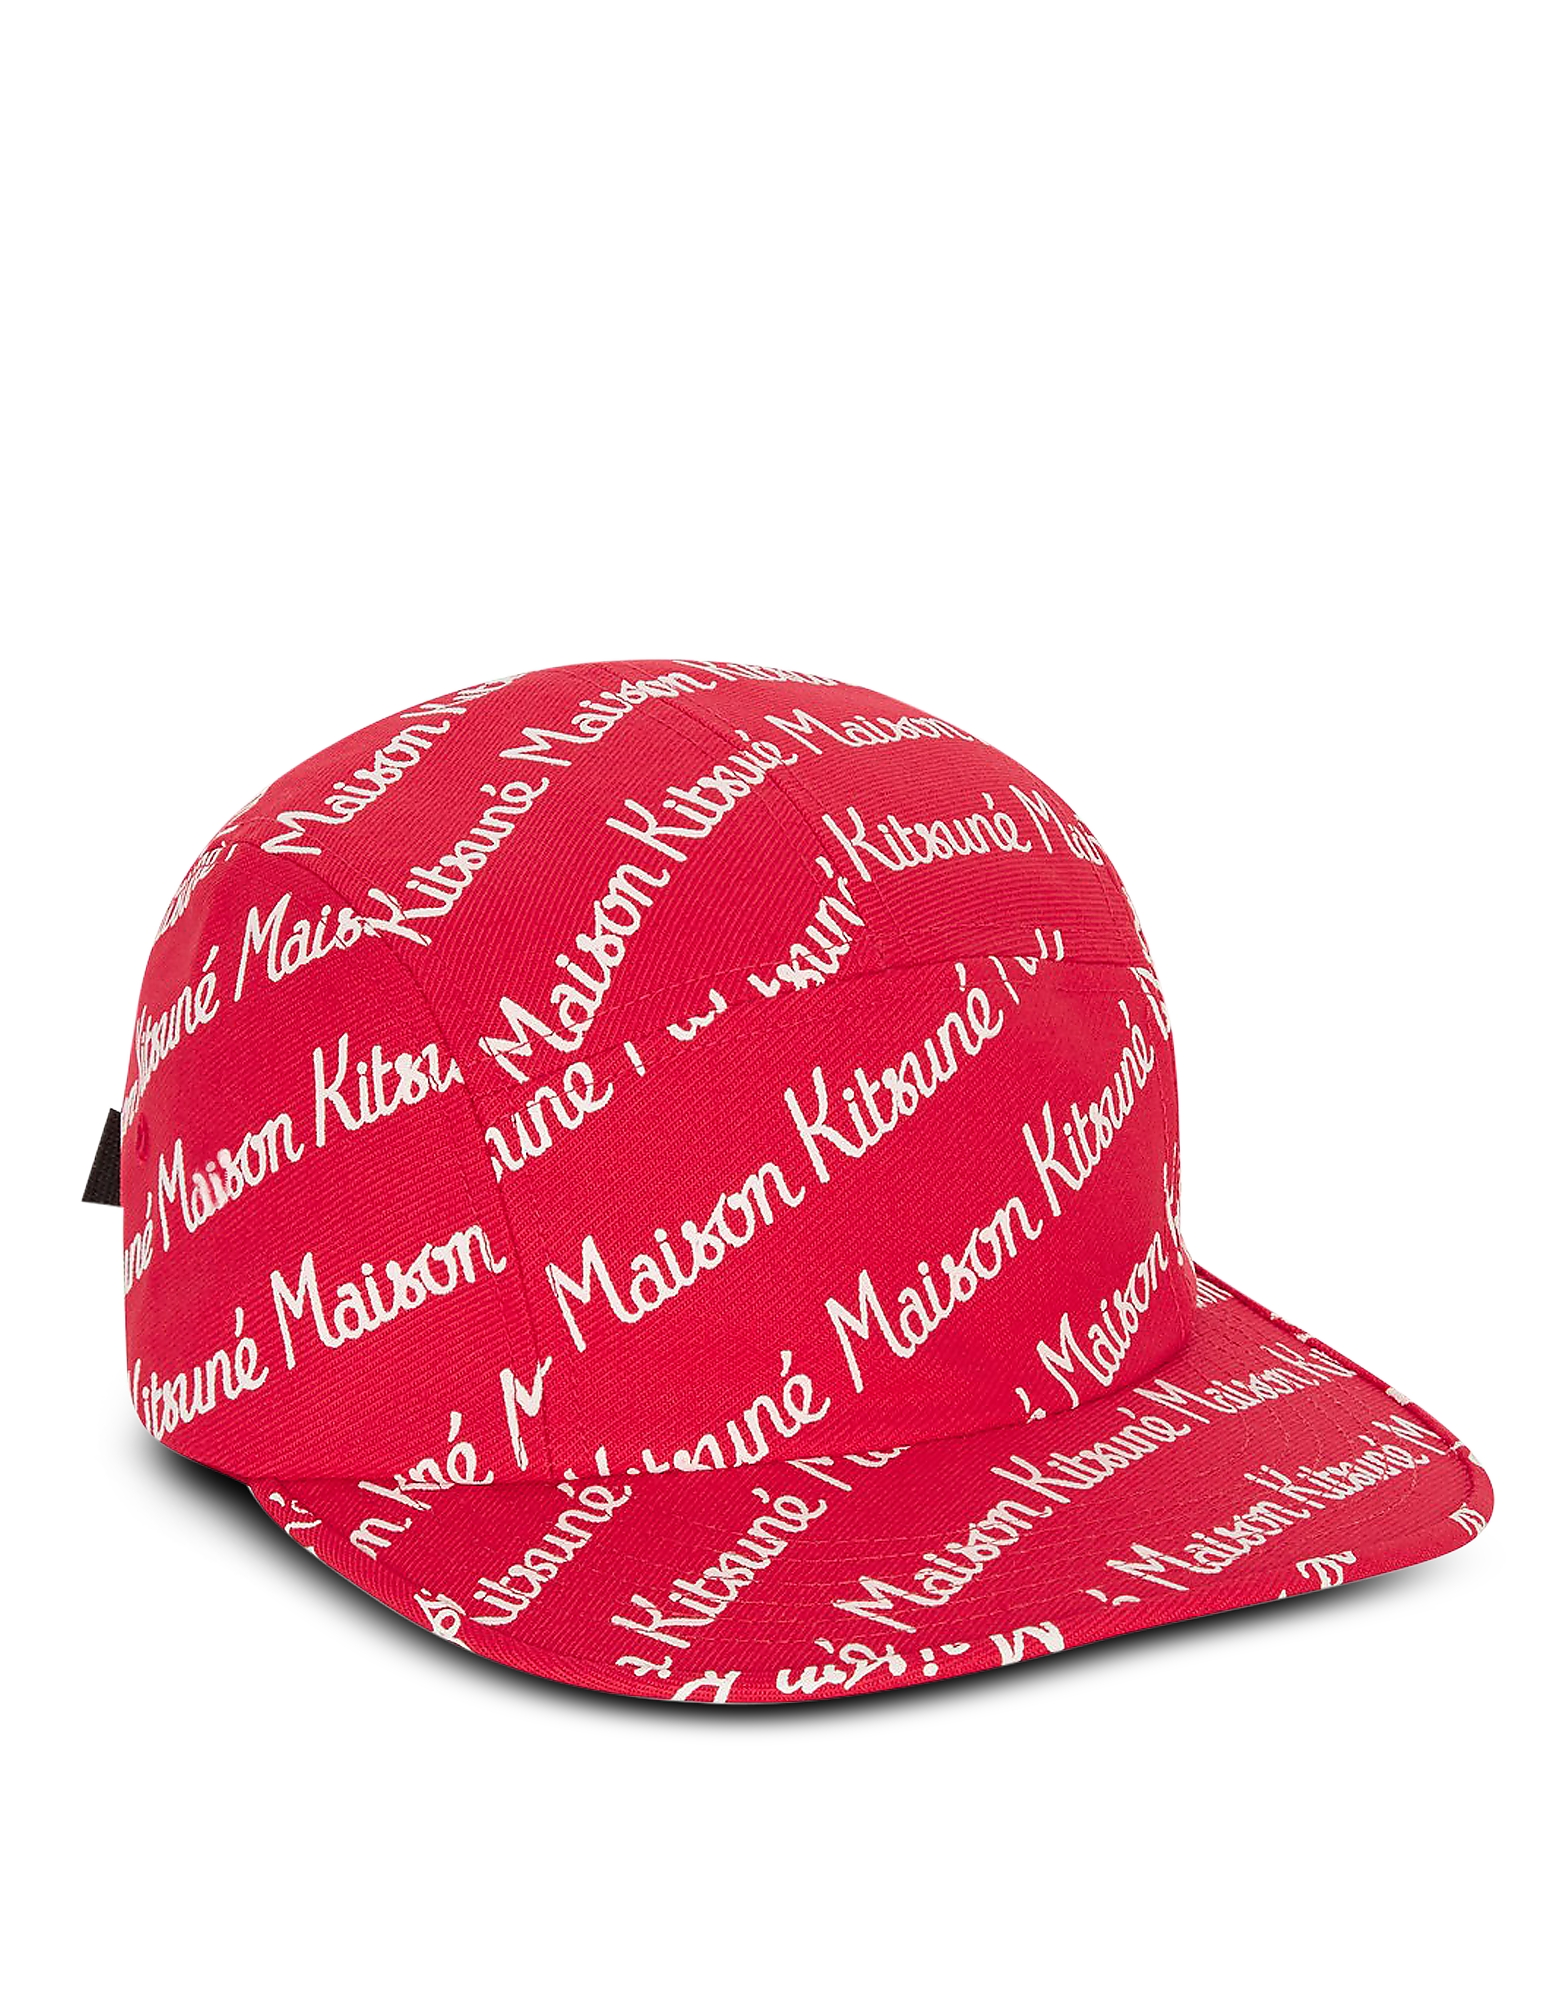 Maison Kitsuné Men's Hats, Maison Kitsune 5P Red Cotton Canvas Baseball Cap